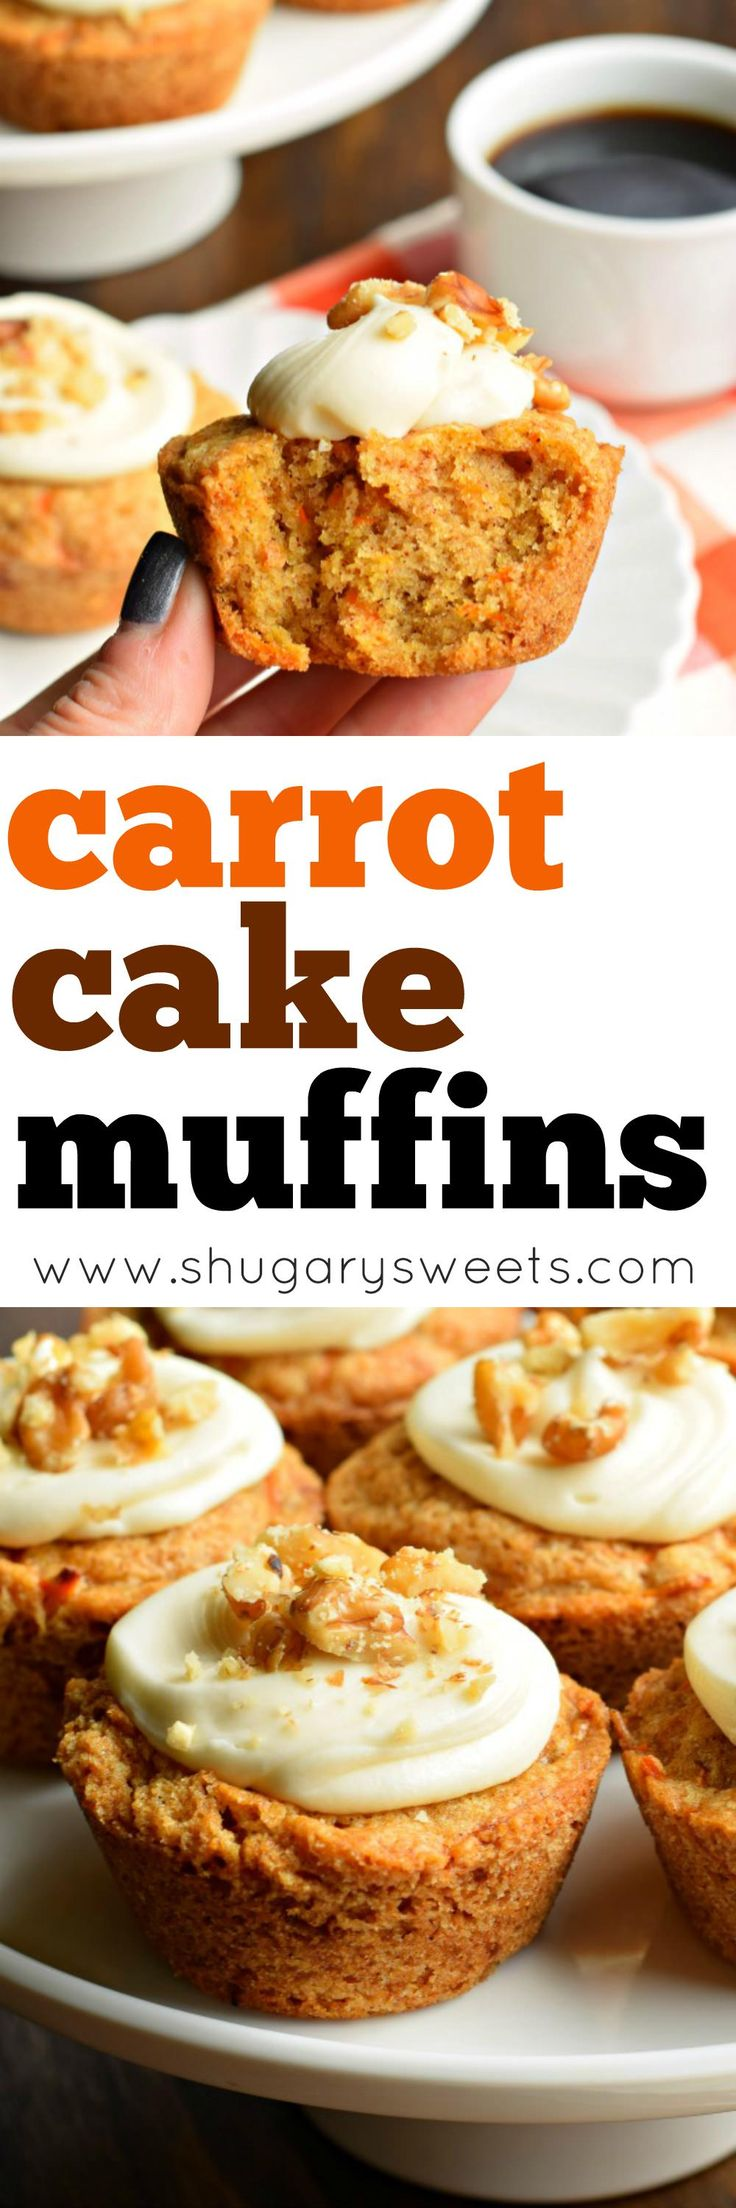 You're going to love eating these Carrot Cake Muffins for breakfast. Especially since they are topped with a cream cheese frosting and walnuts!